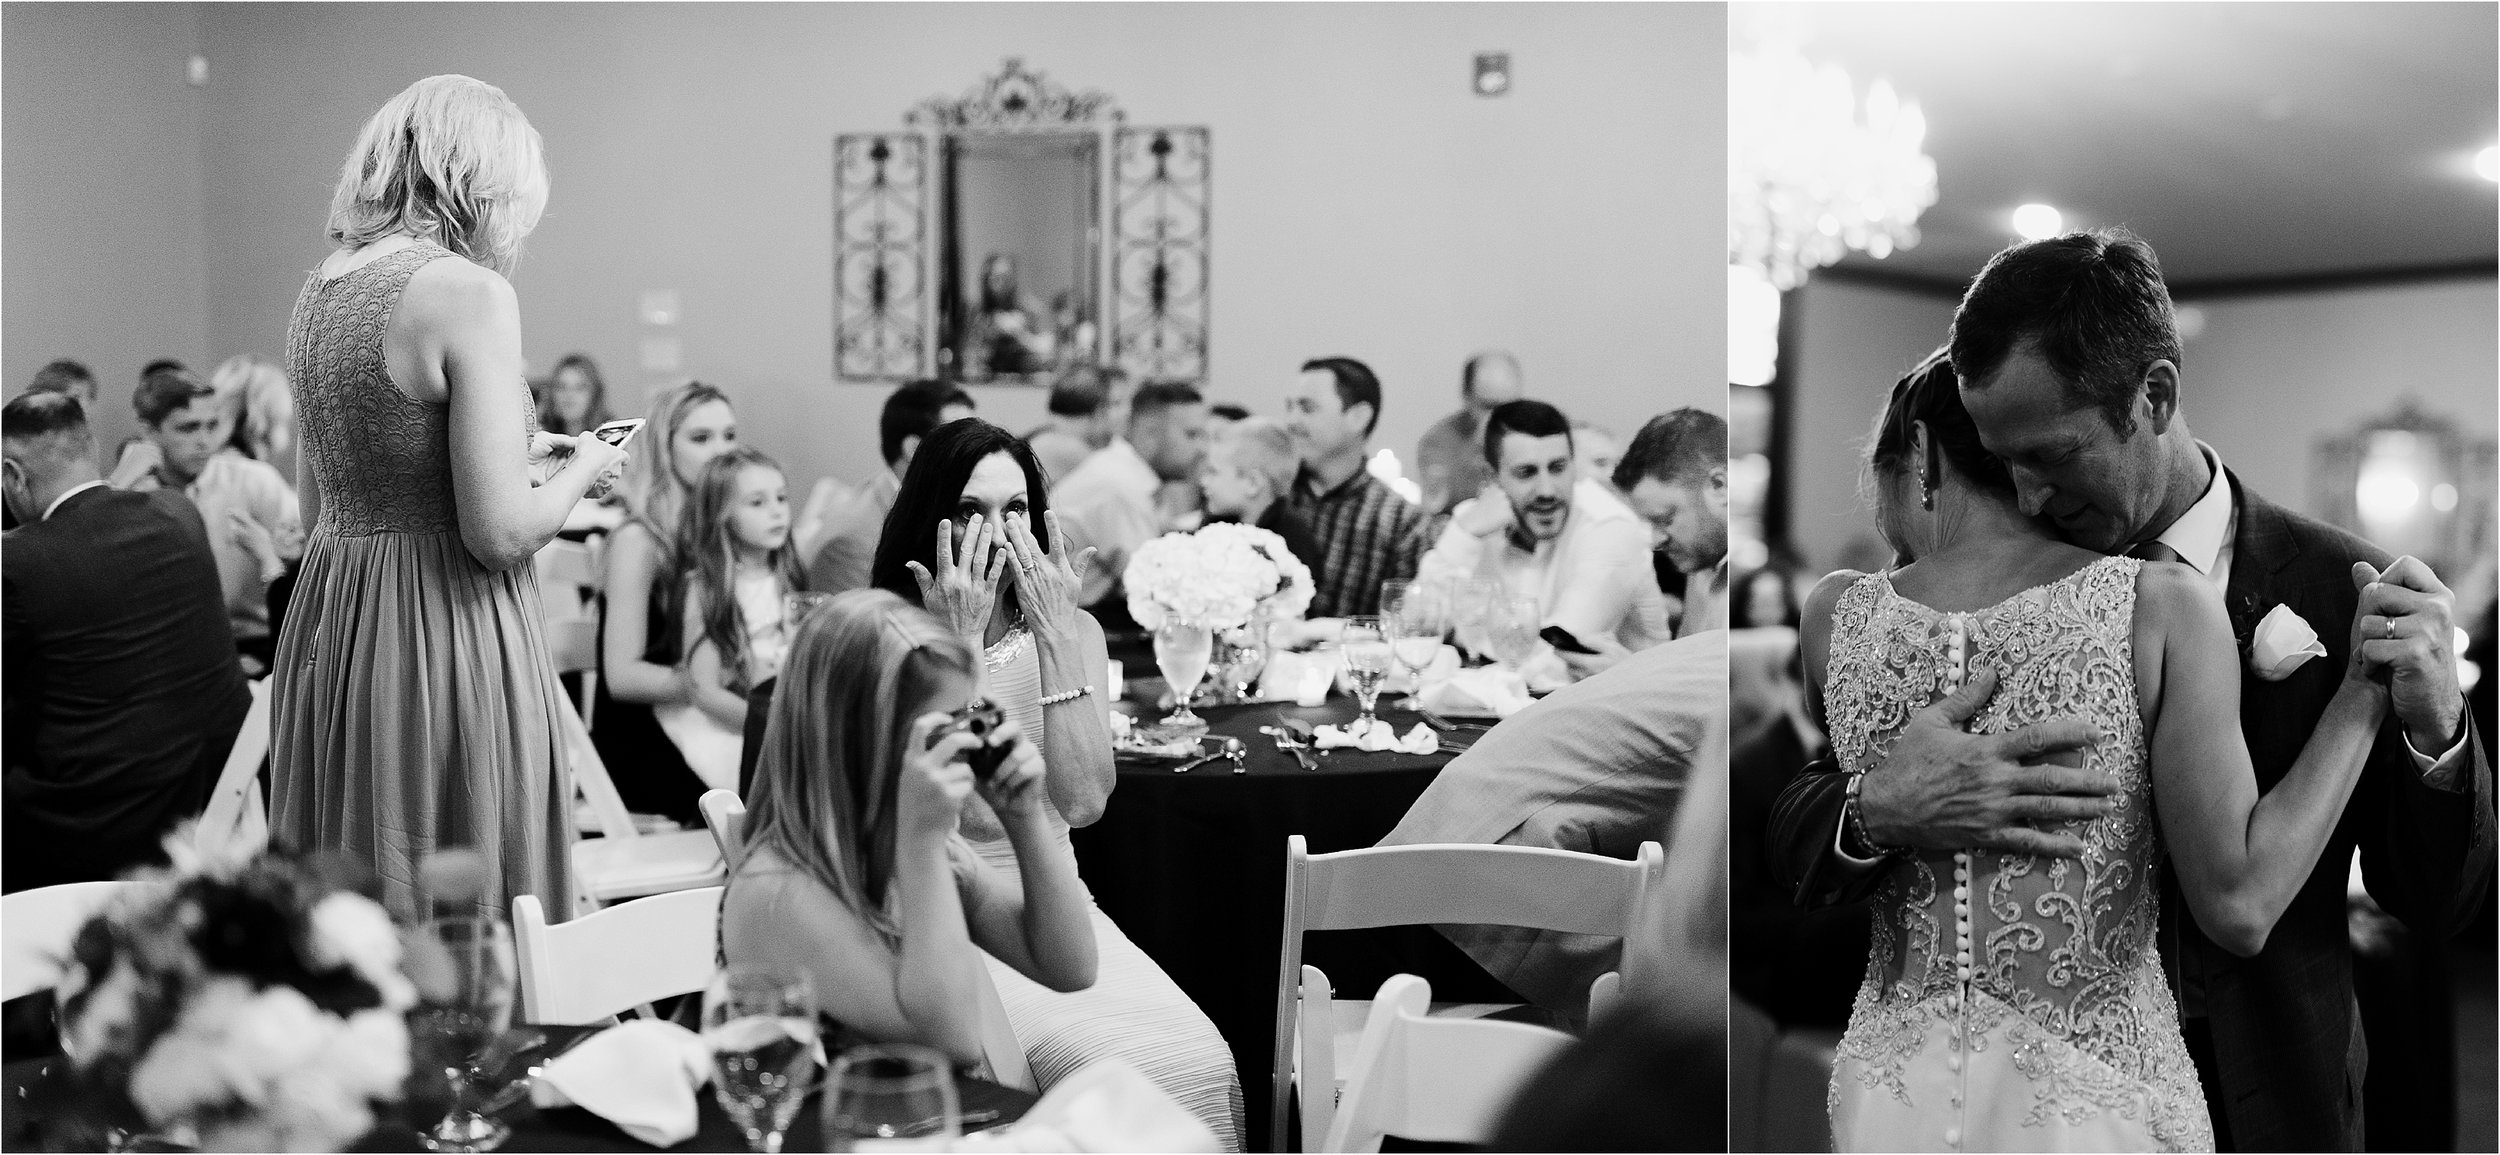 Vesica Piscis Chapel, Oklahoma Wedding, Regan and Brock Hime-54.jpg